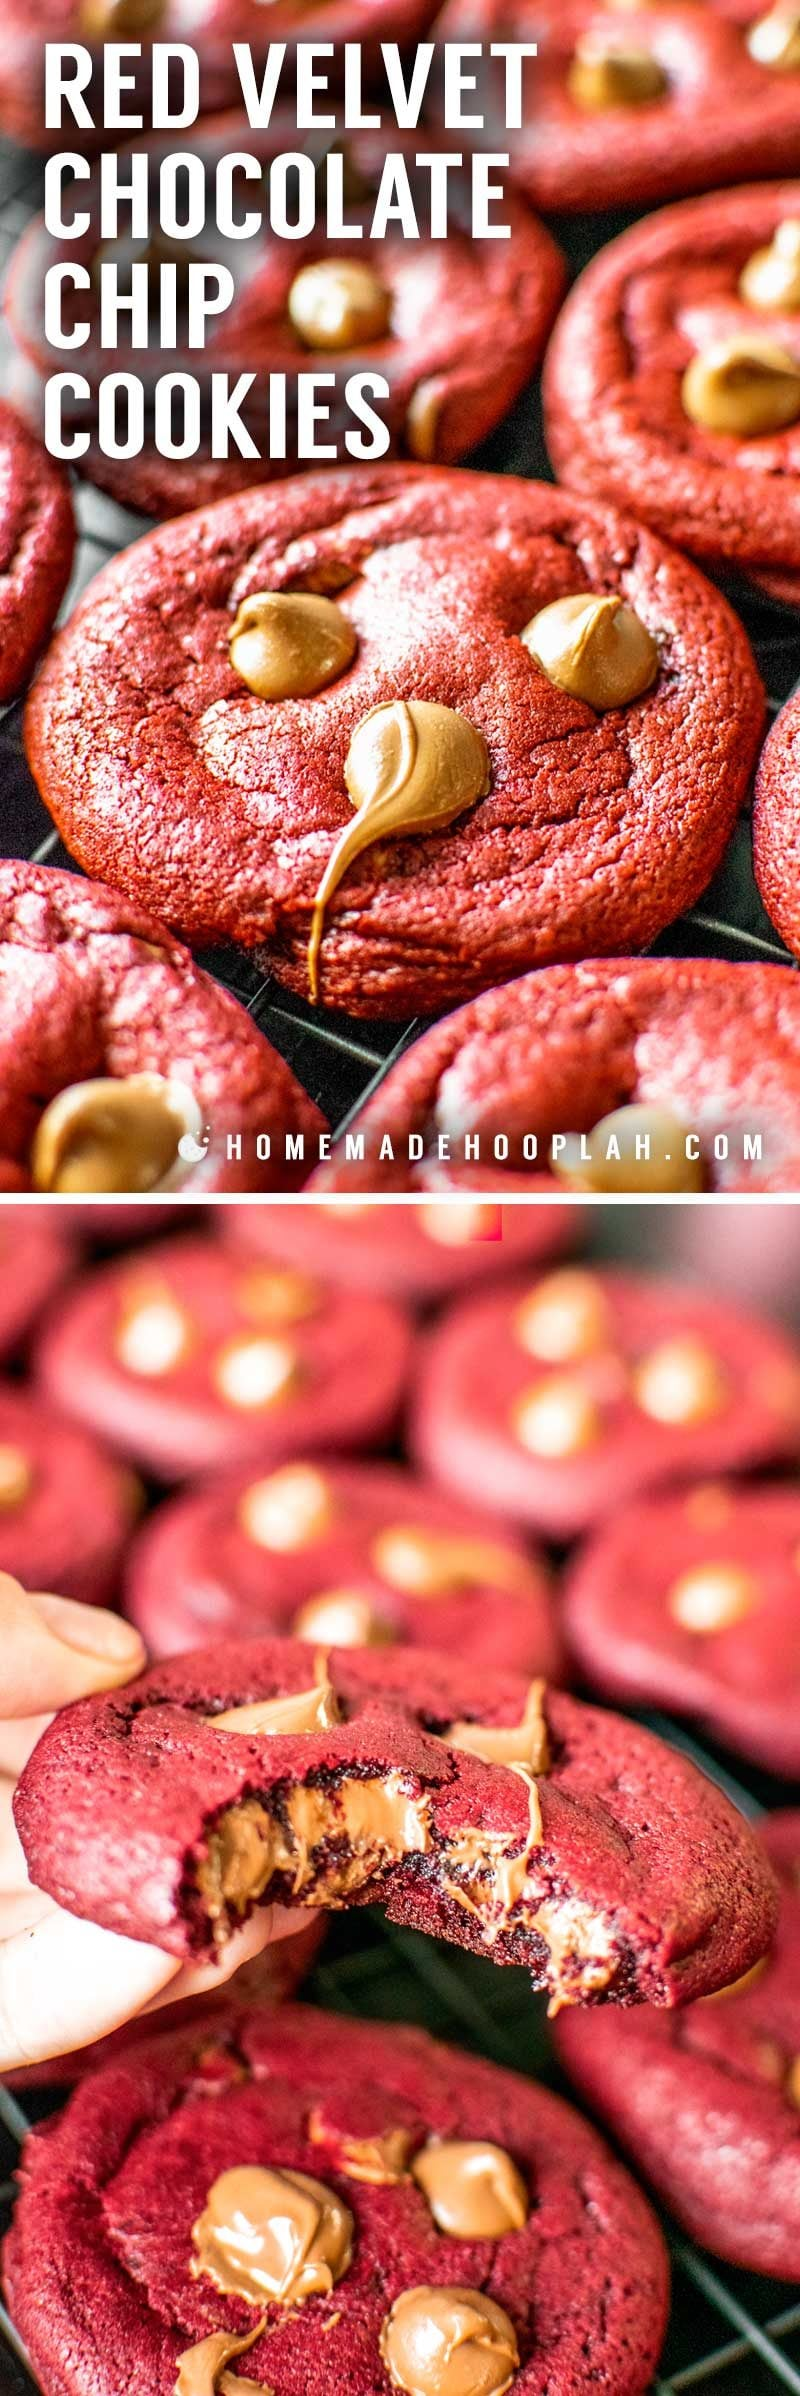 How to make red velvet cookies.